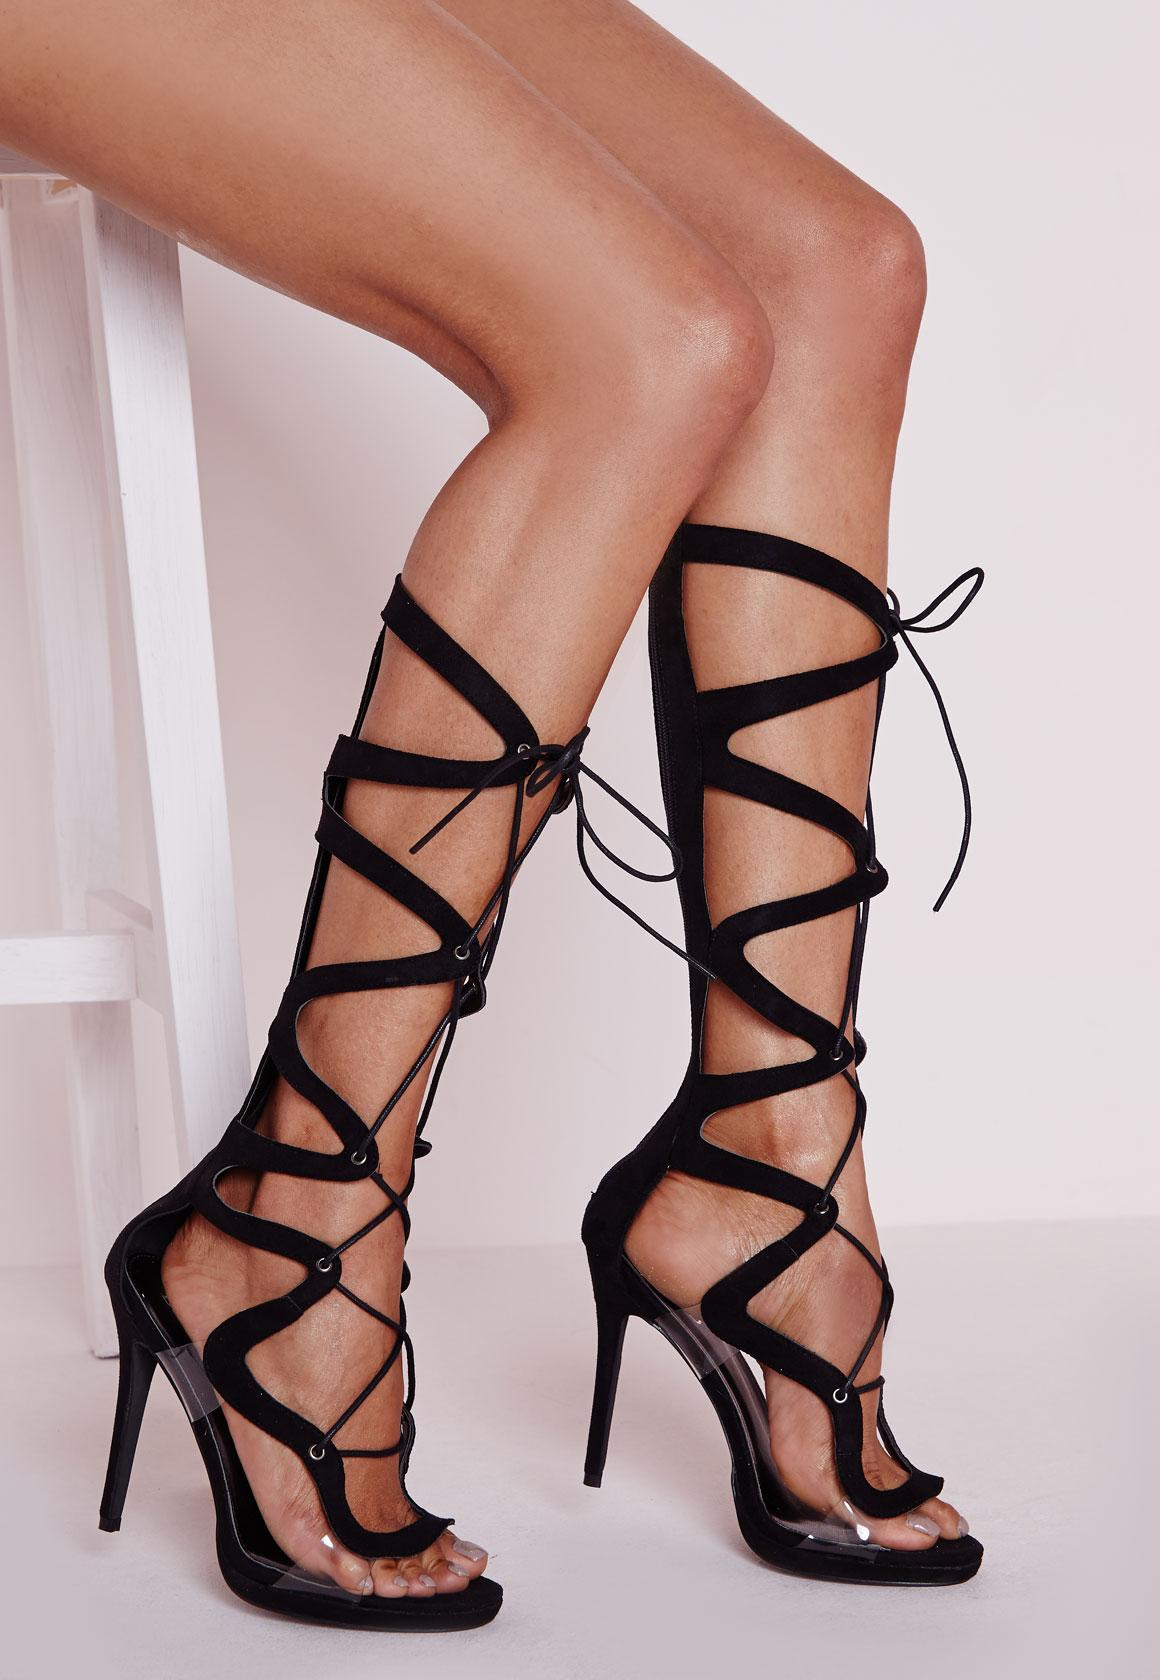 Geometric Knee High Gladiator Heeled Perspex Sandals Black ...